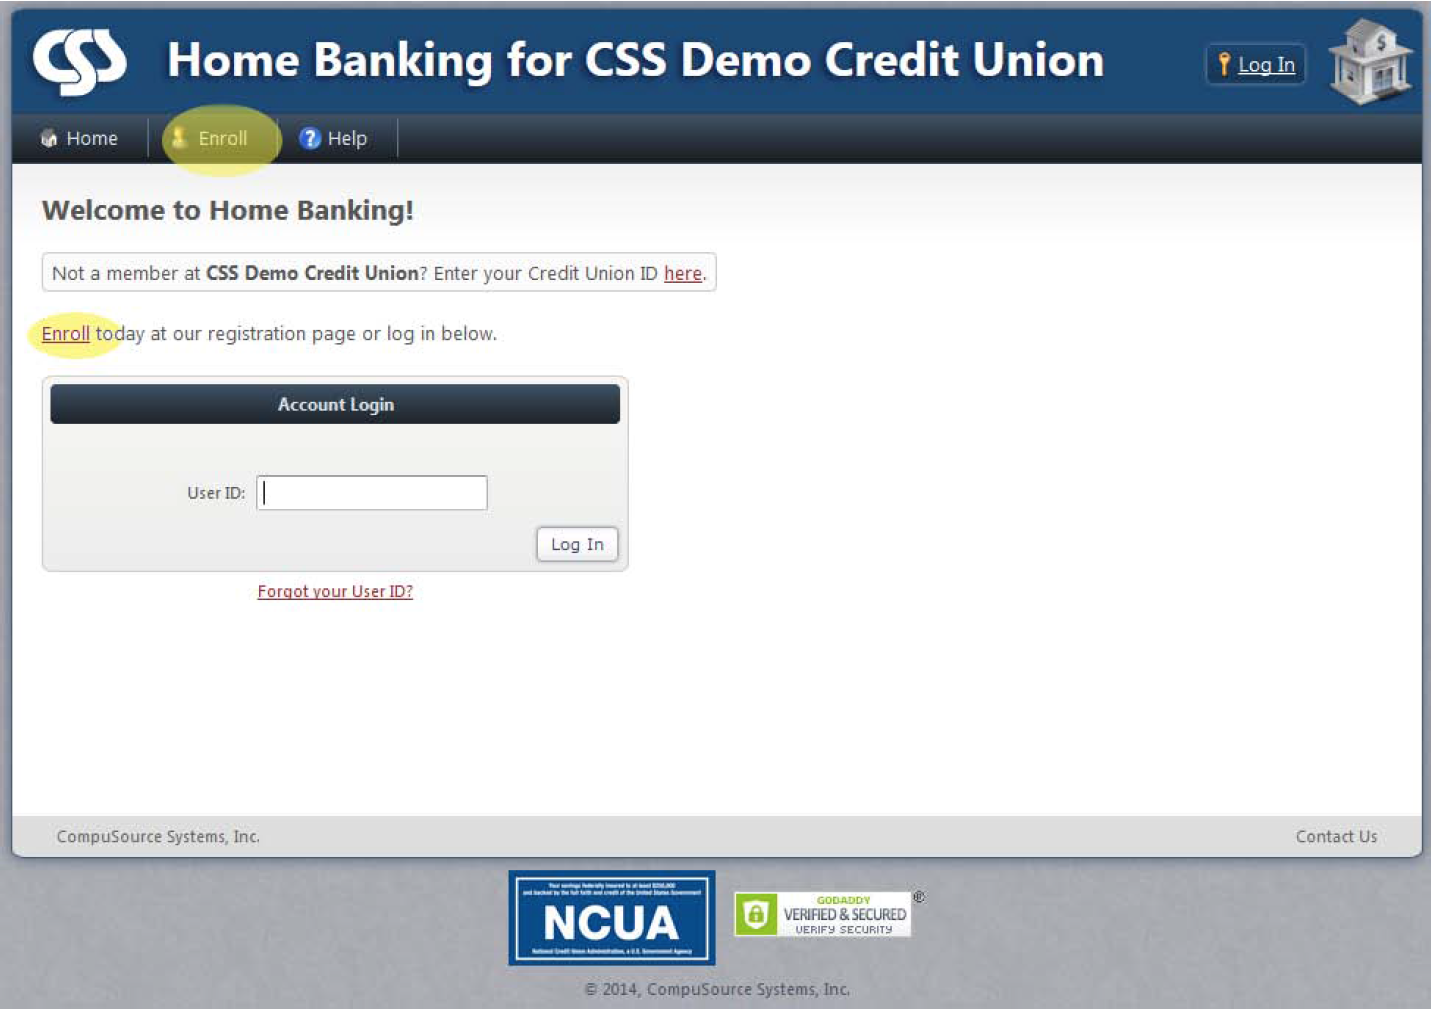 Home Banking image instructions